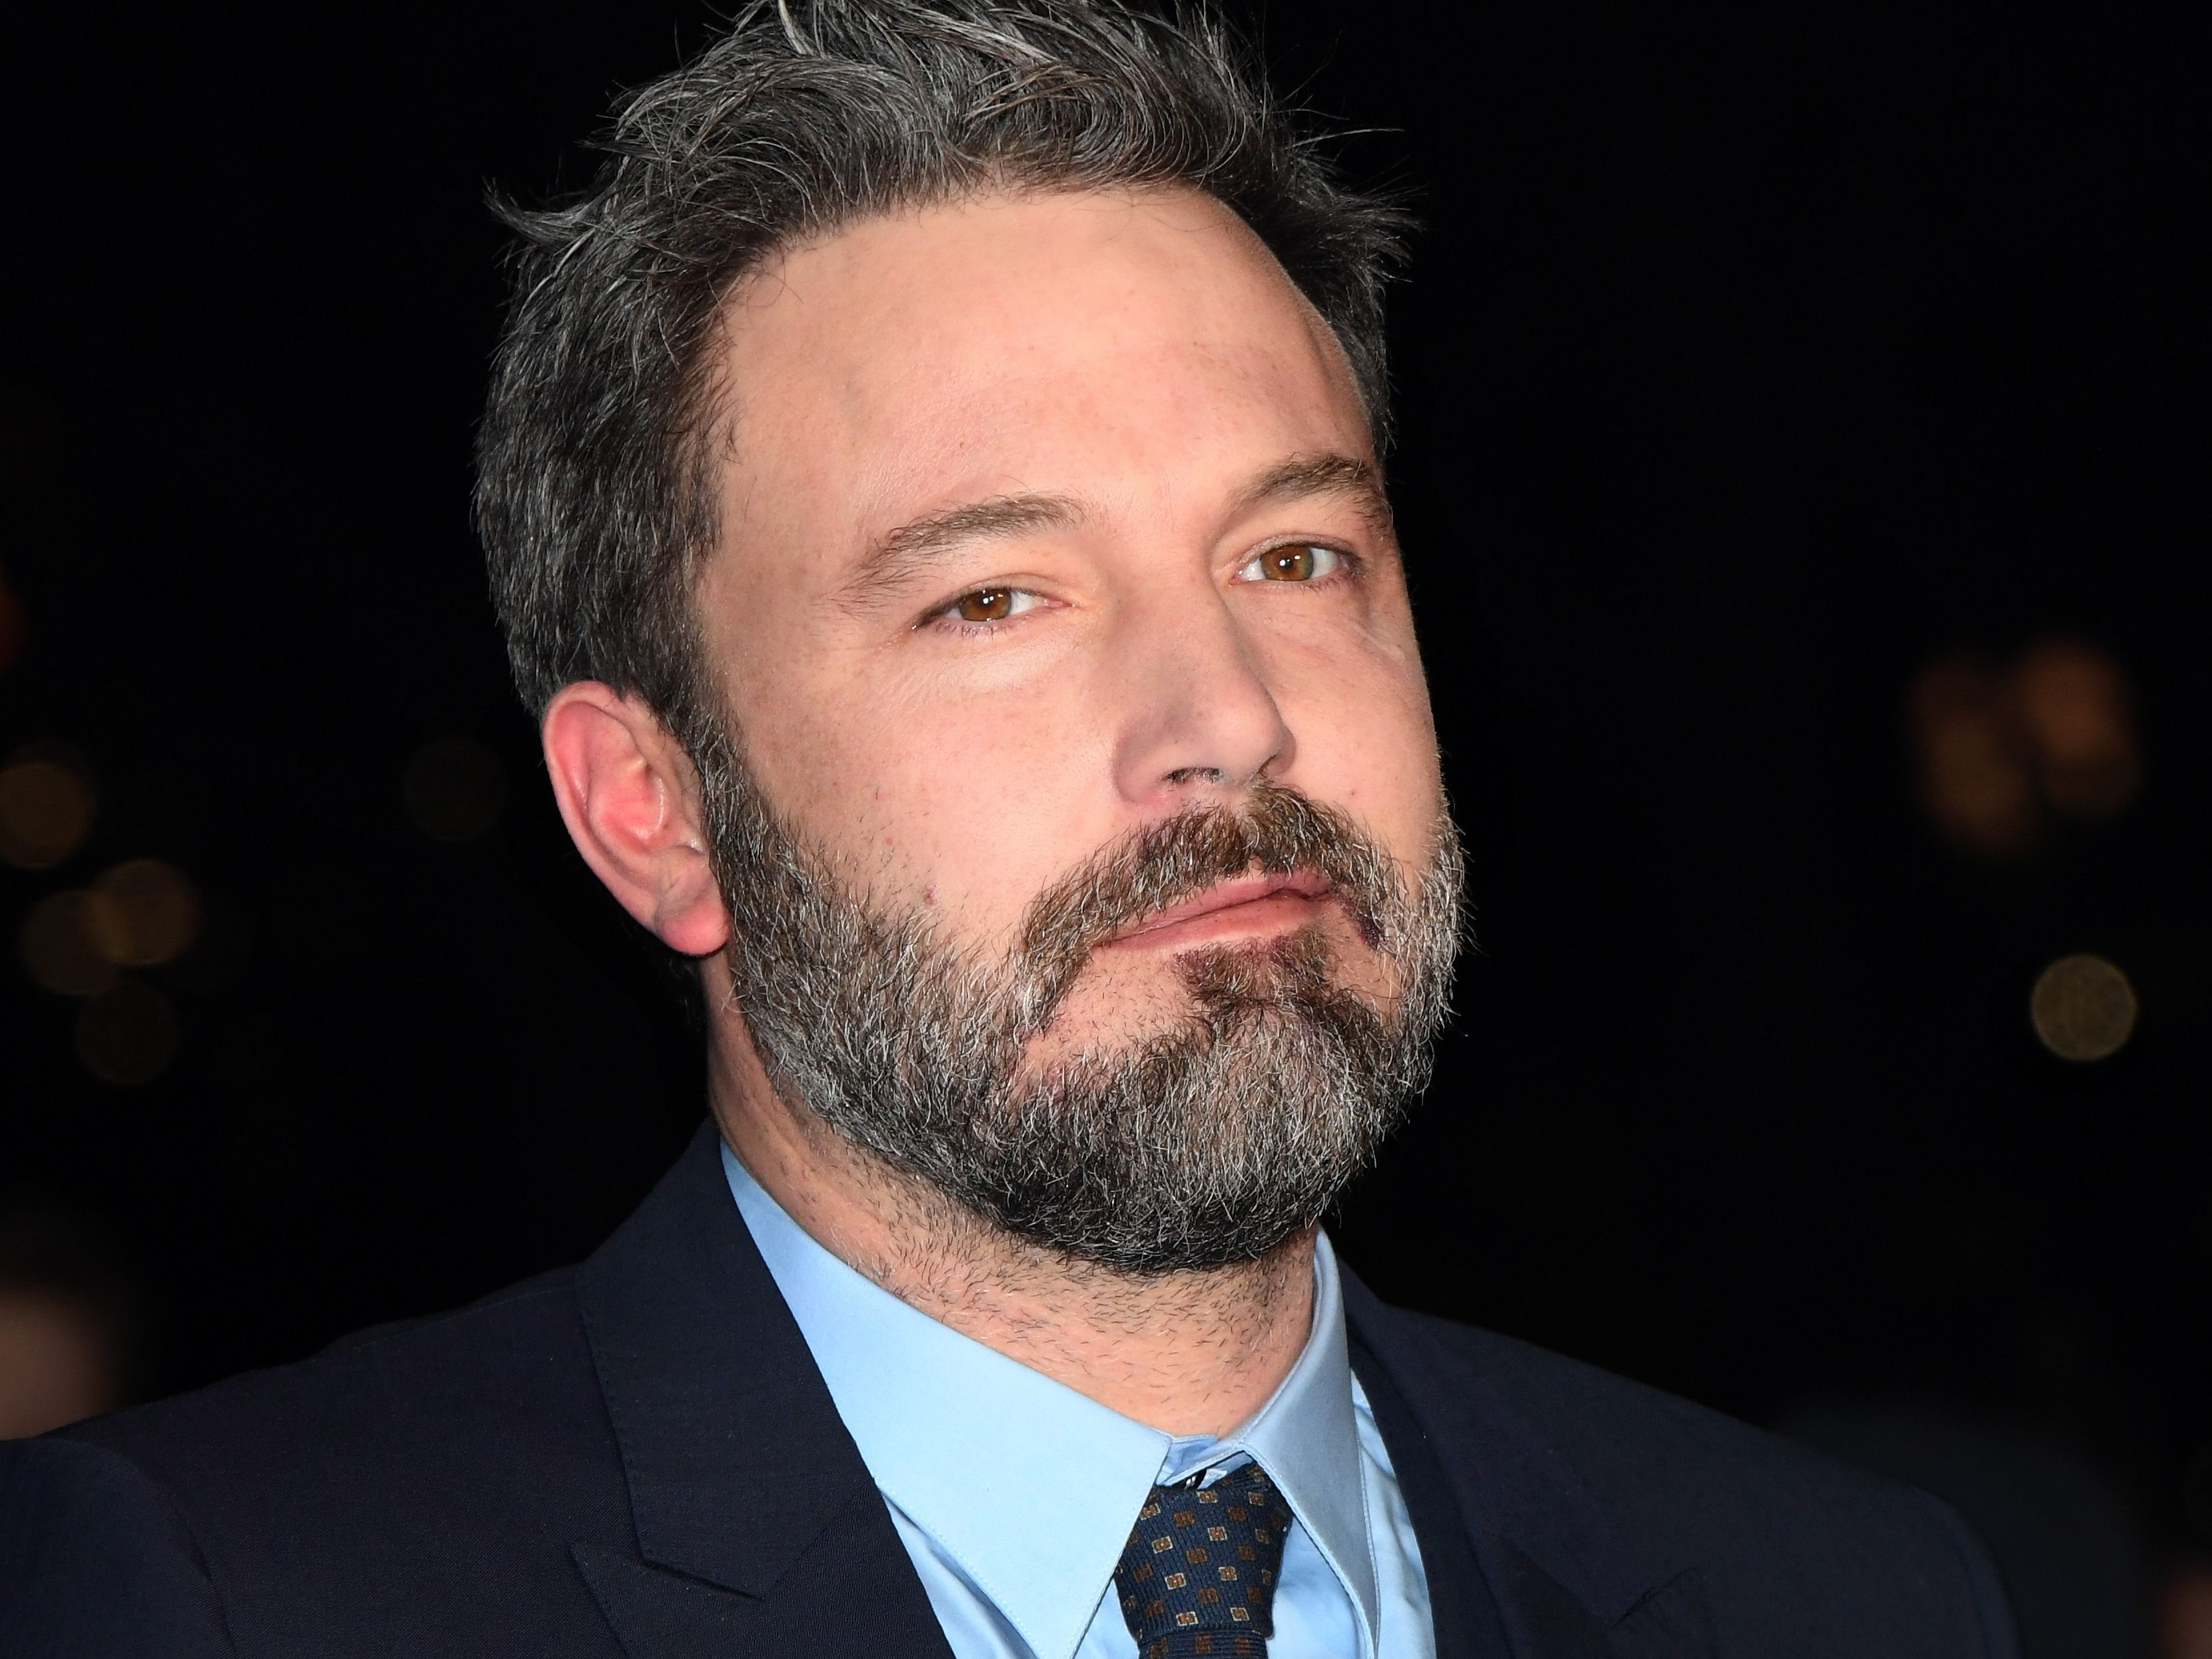 mgid ao image mtv.com 218736?width=385&height=217&quality=.05&format=jpg ben affleck reacts to that 'sad ben affleck' meme, knows how to take